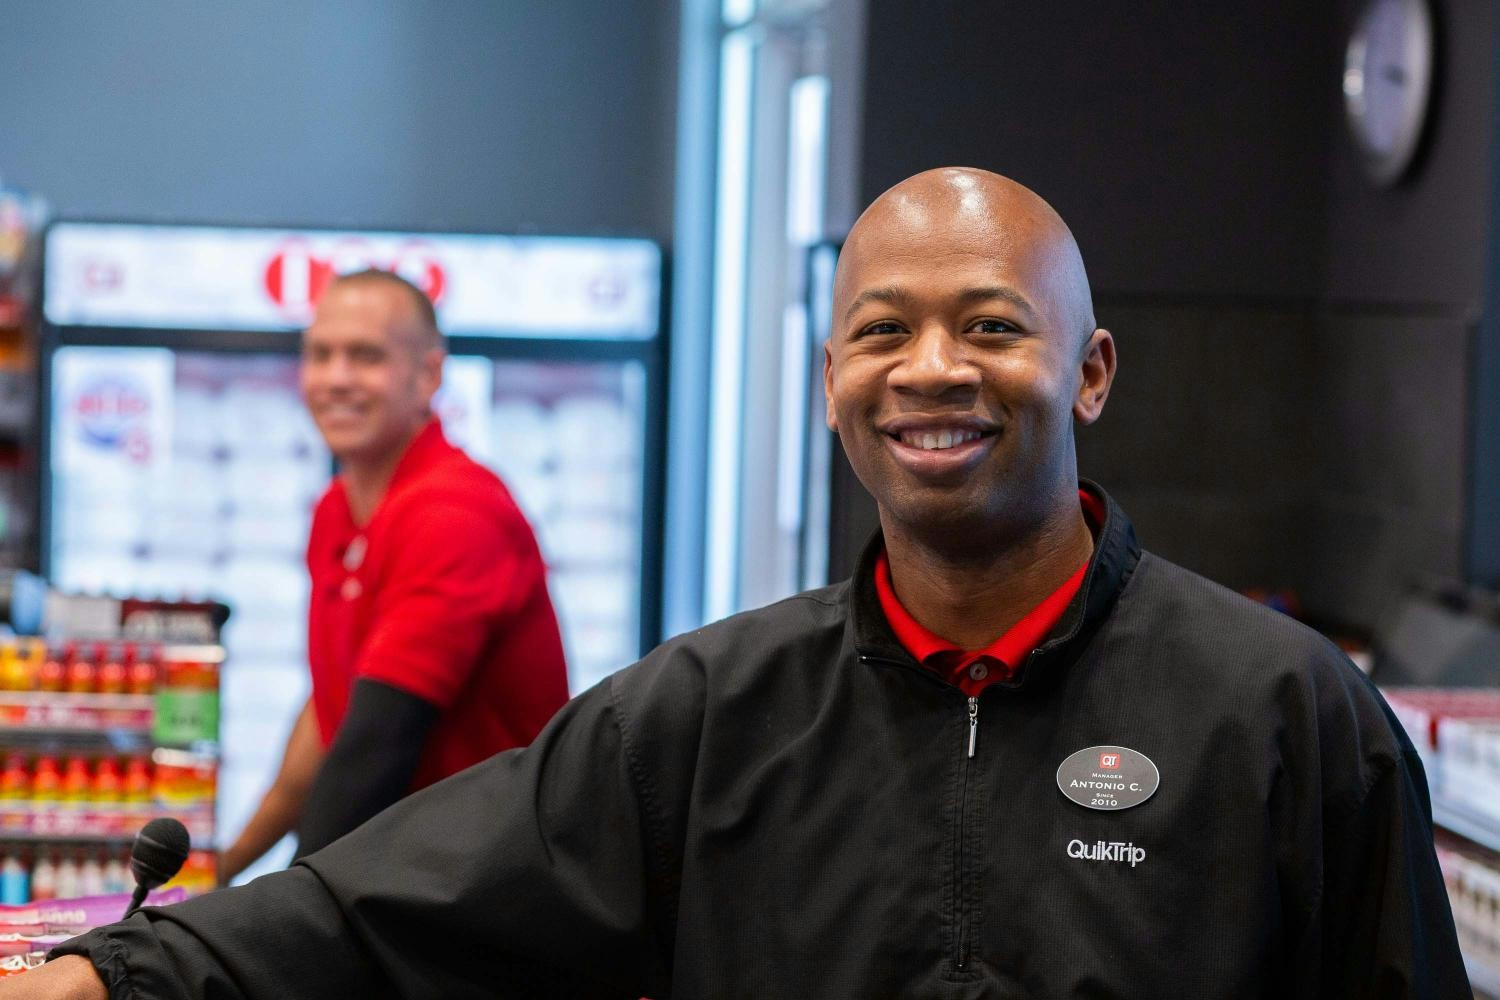 QuikTrip - Great Place To Work United States